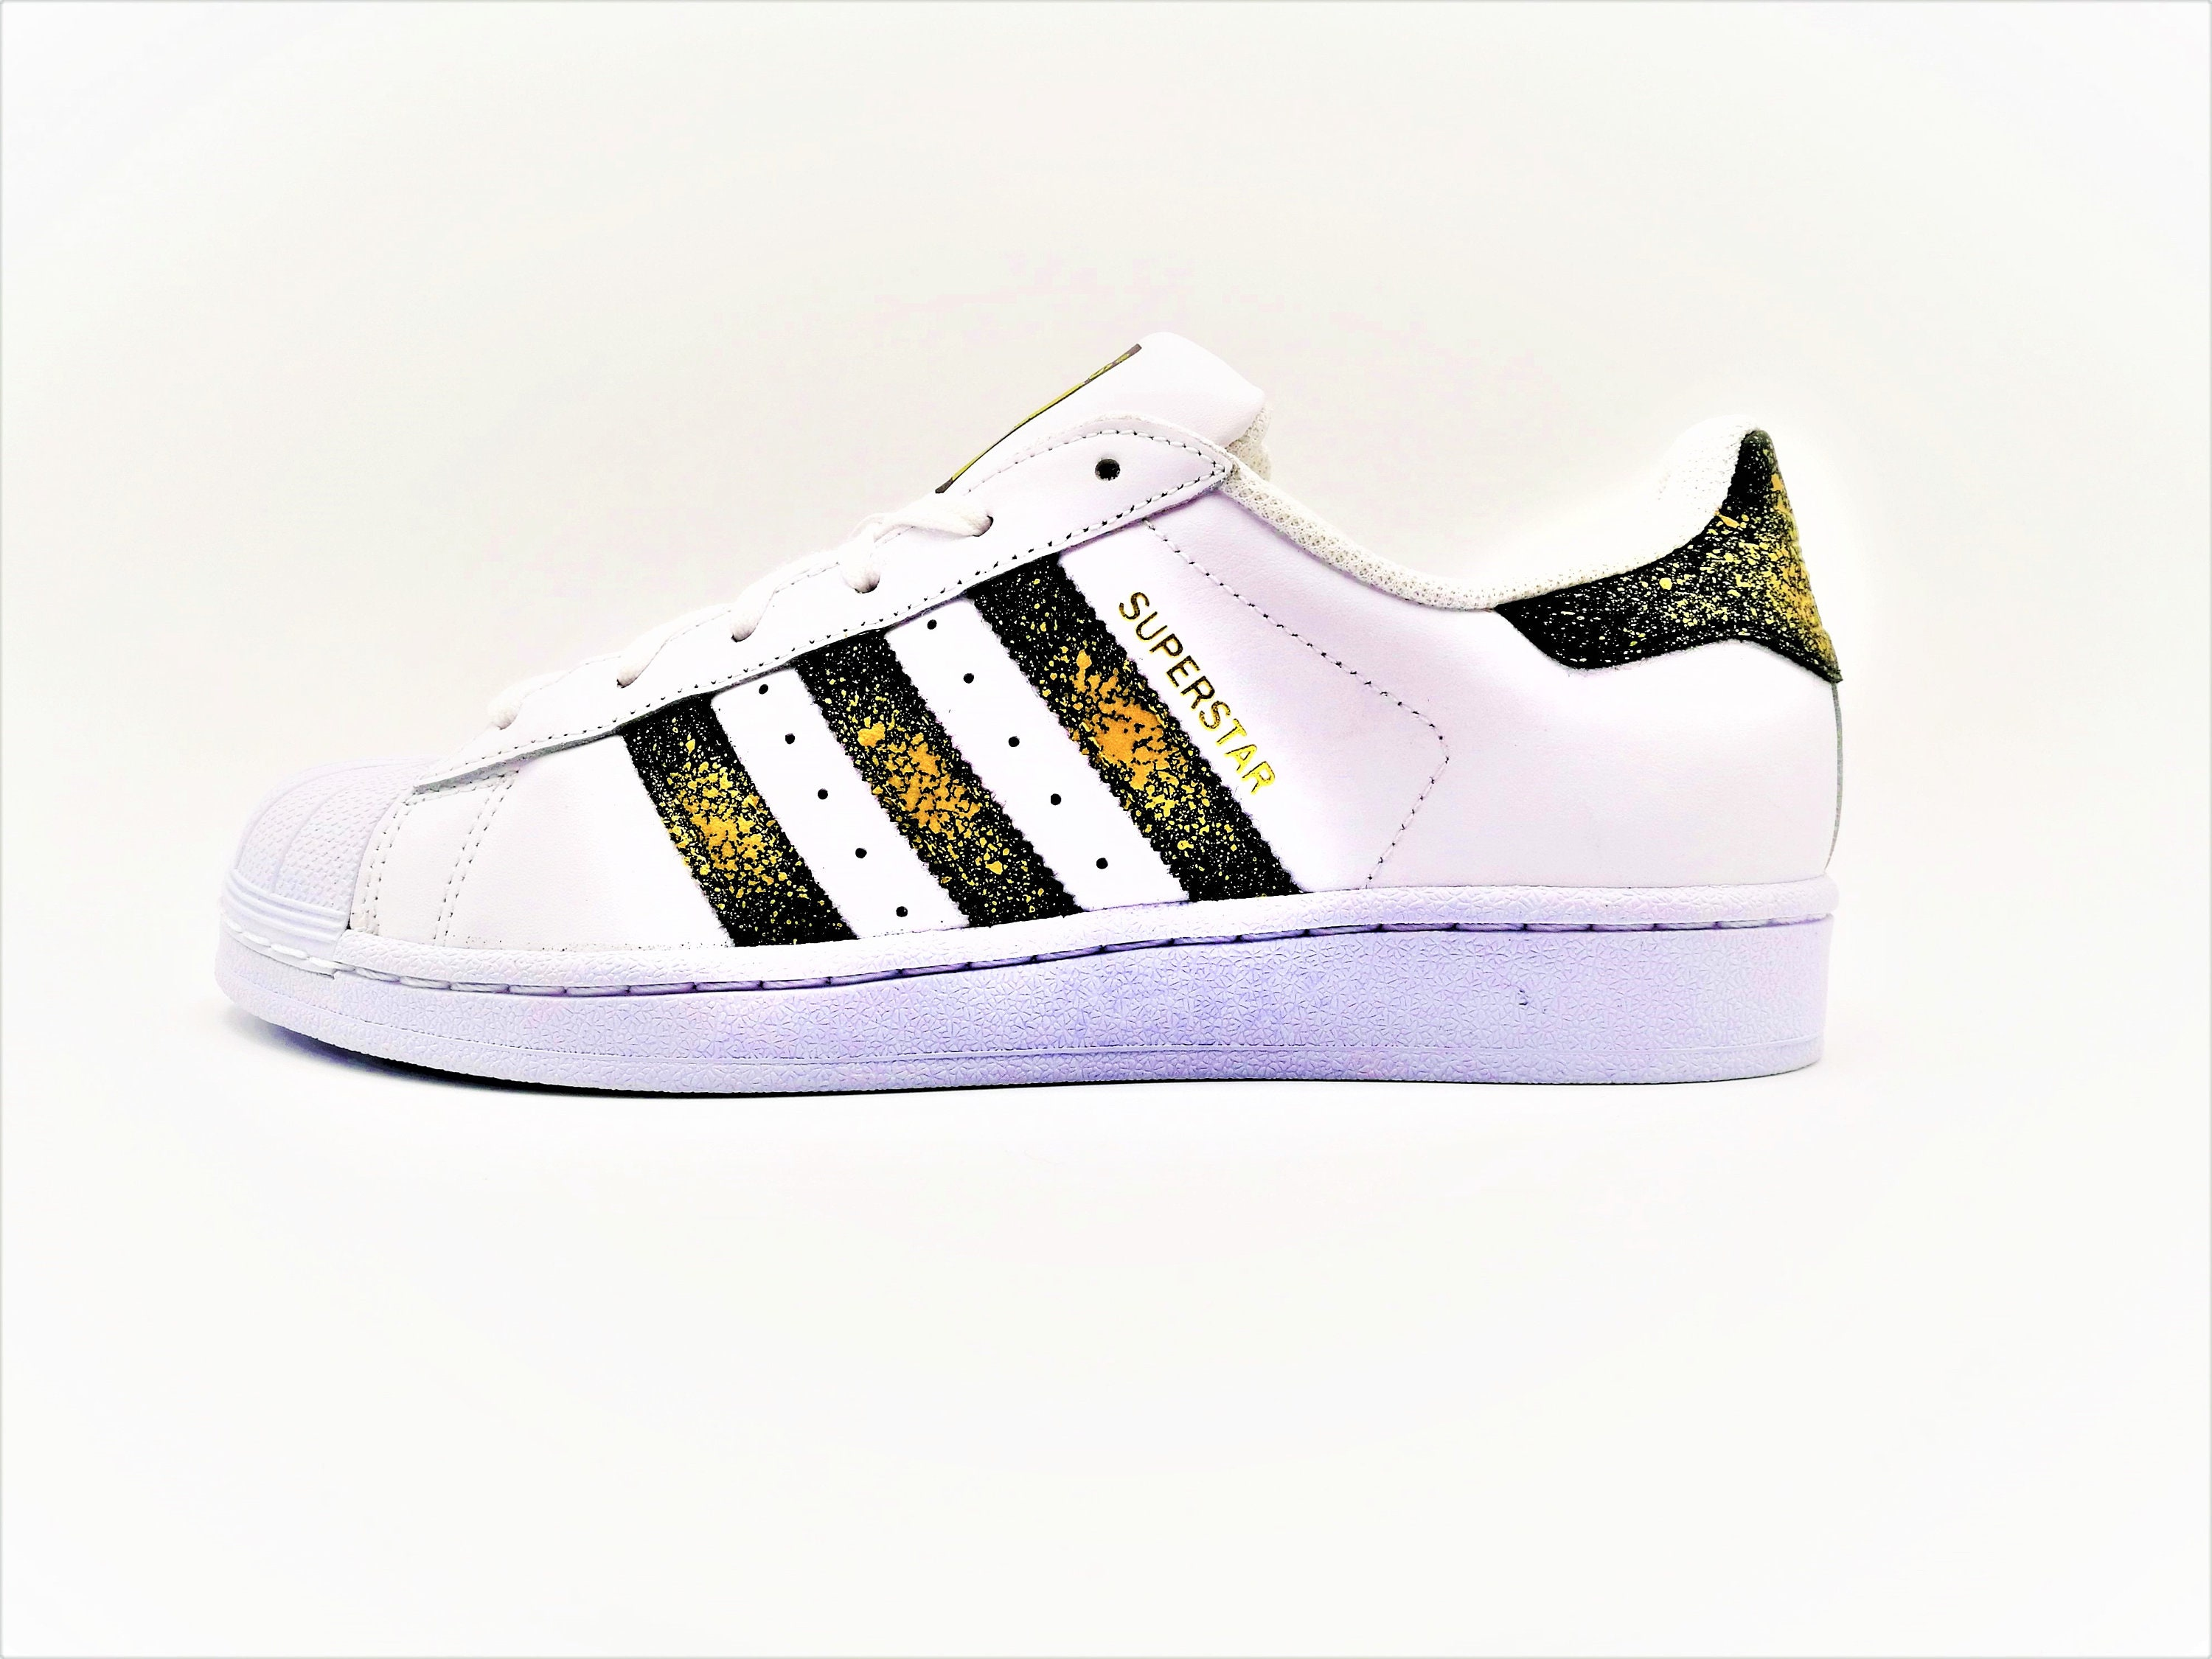 Adidas Superstar Color Splash by Double G Customs